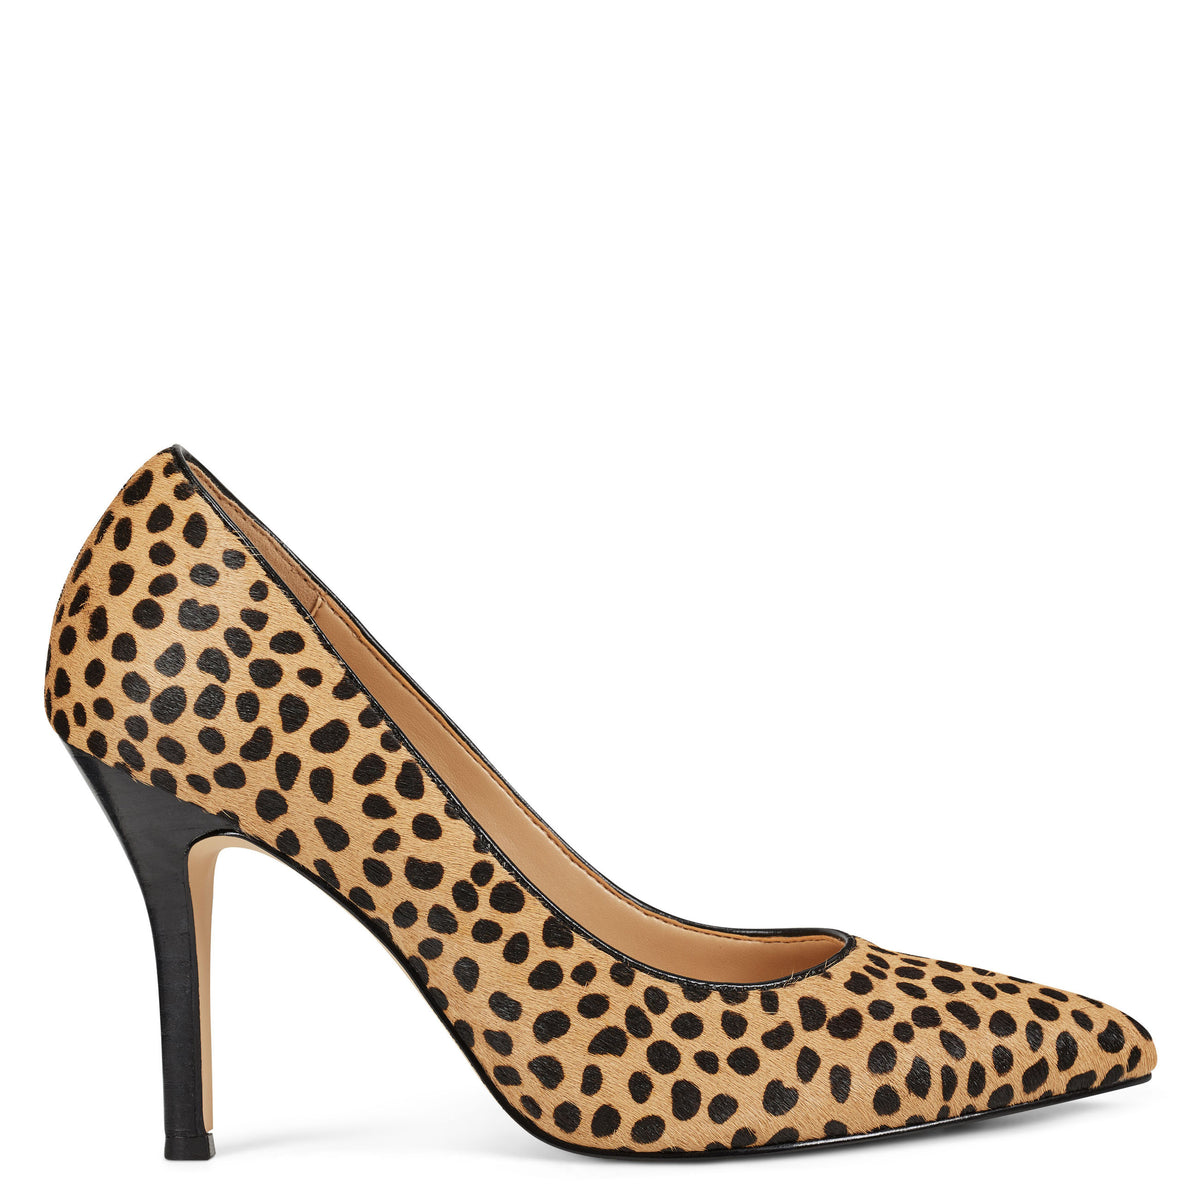 flax-pointy-toe-pumps-in-leopard